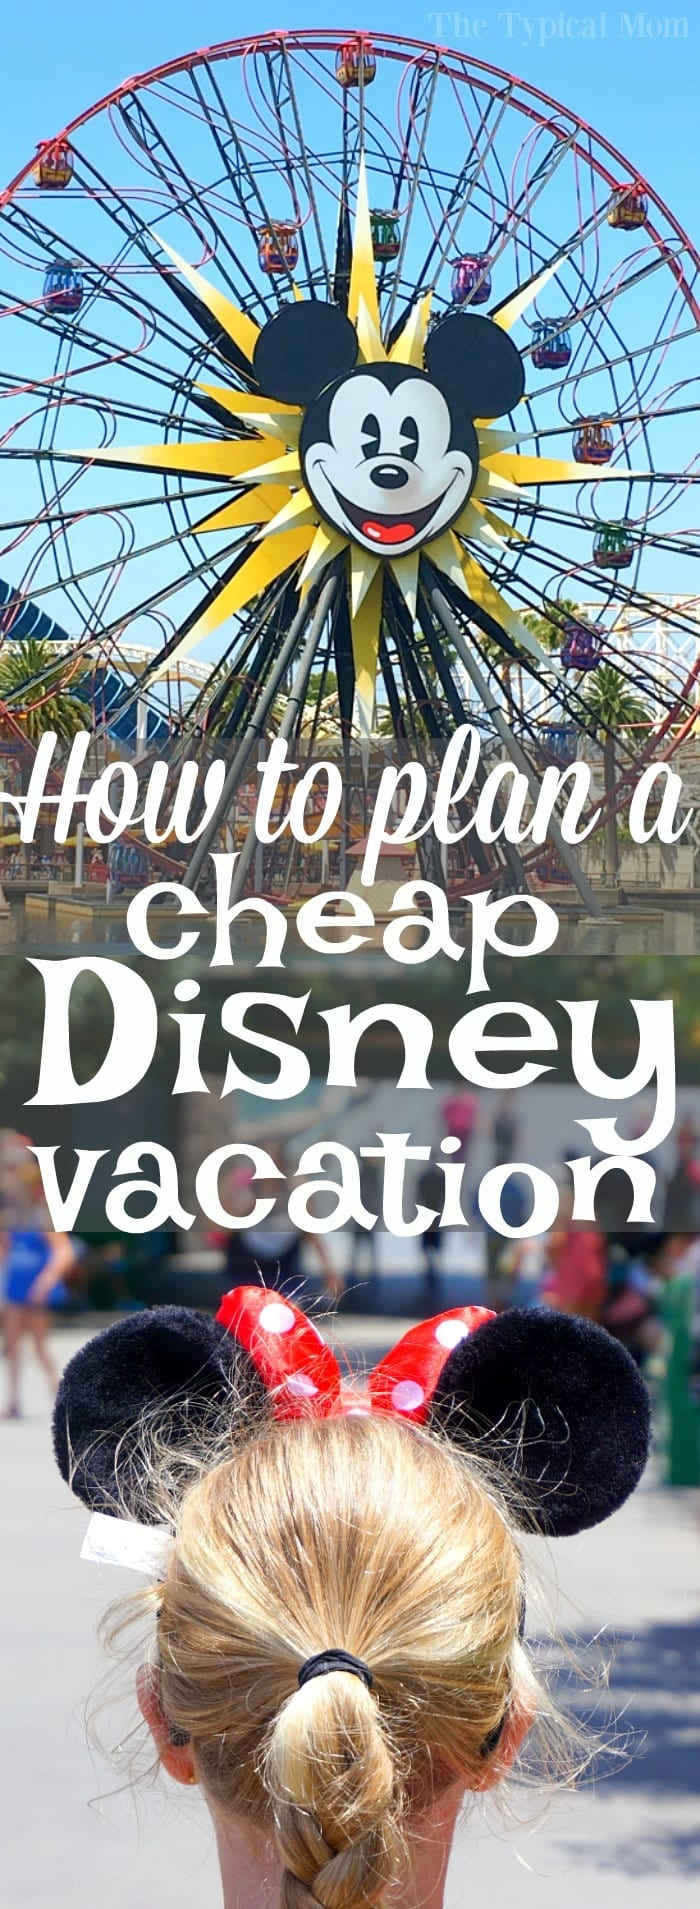 This is how you can plan affordable Disney vacations for your family! Get a free day at Disneyland or adult tickets for the kids price and hotel deals too! #disney #disneyland